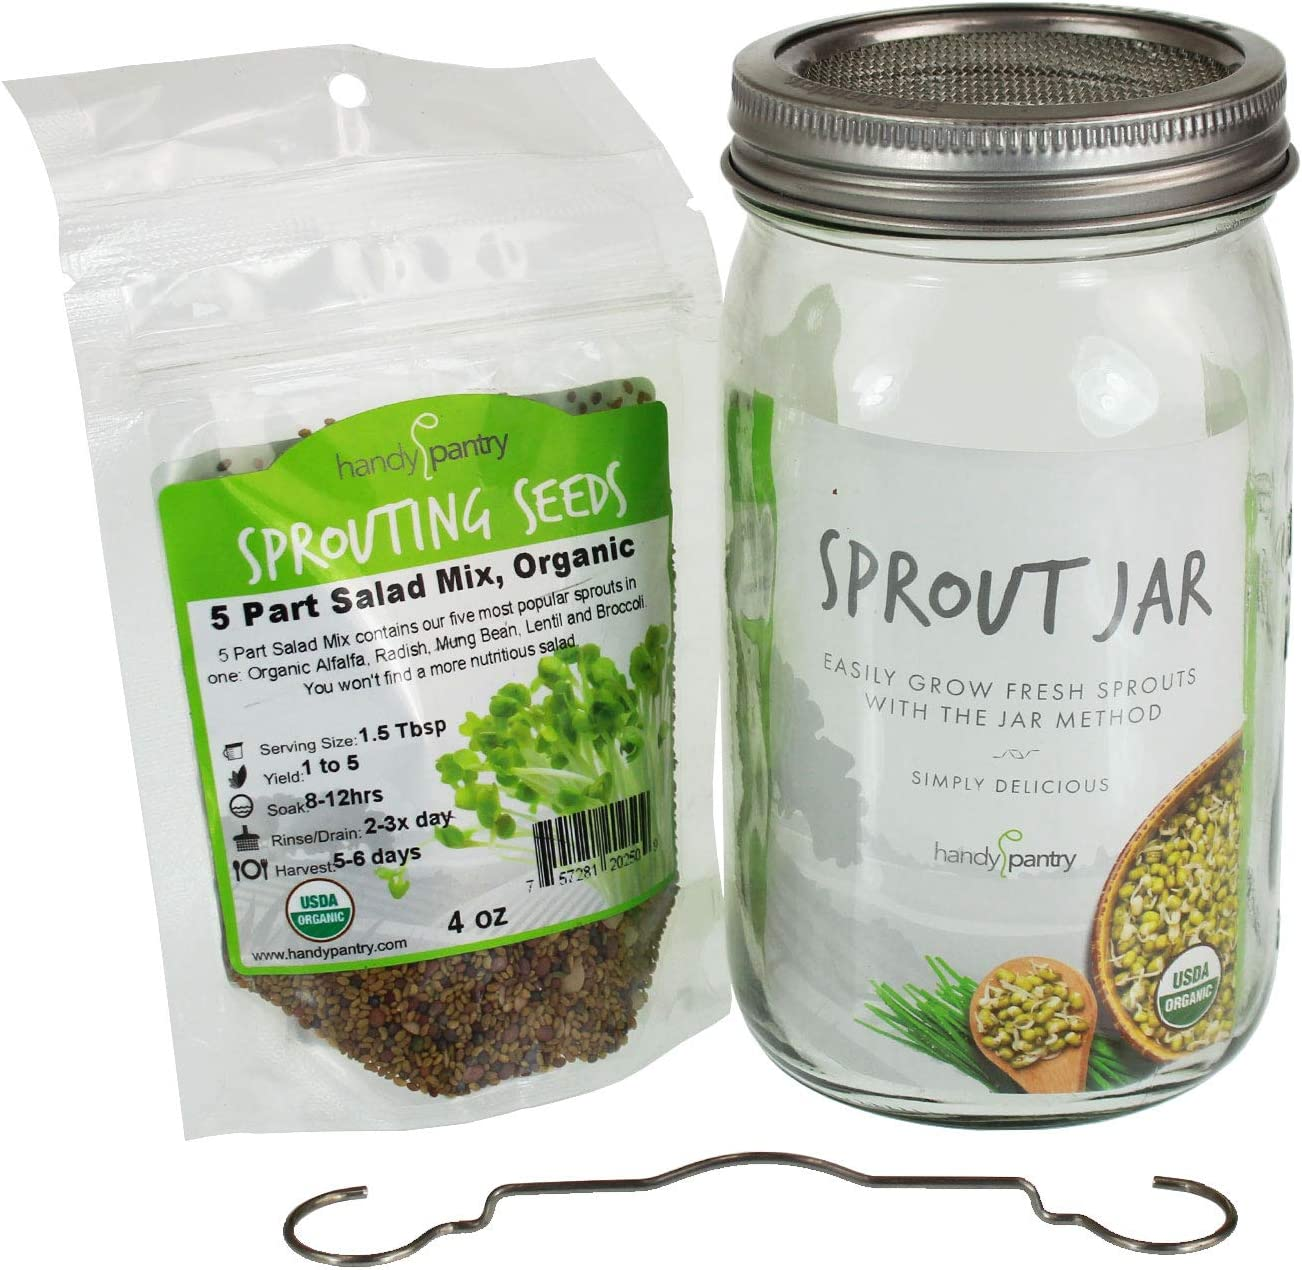 Trellis Co. Complete Sprouting Jar Lid Kit With Seeds Includes Wide Mouth Quart Jar, 316 Stainless Sprouting Ring With Mesh Strainer, Sprouting Stand, And Handy Pantry Sprouting Seeds